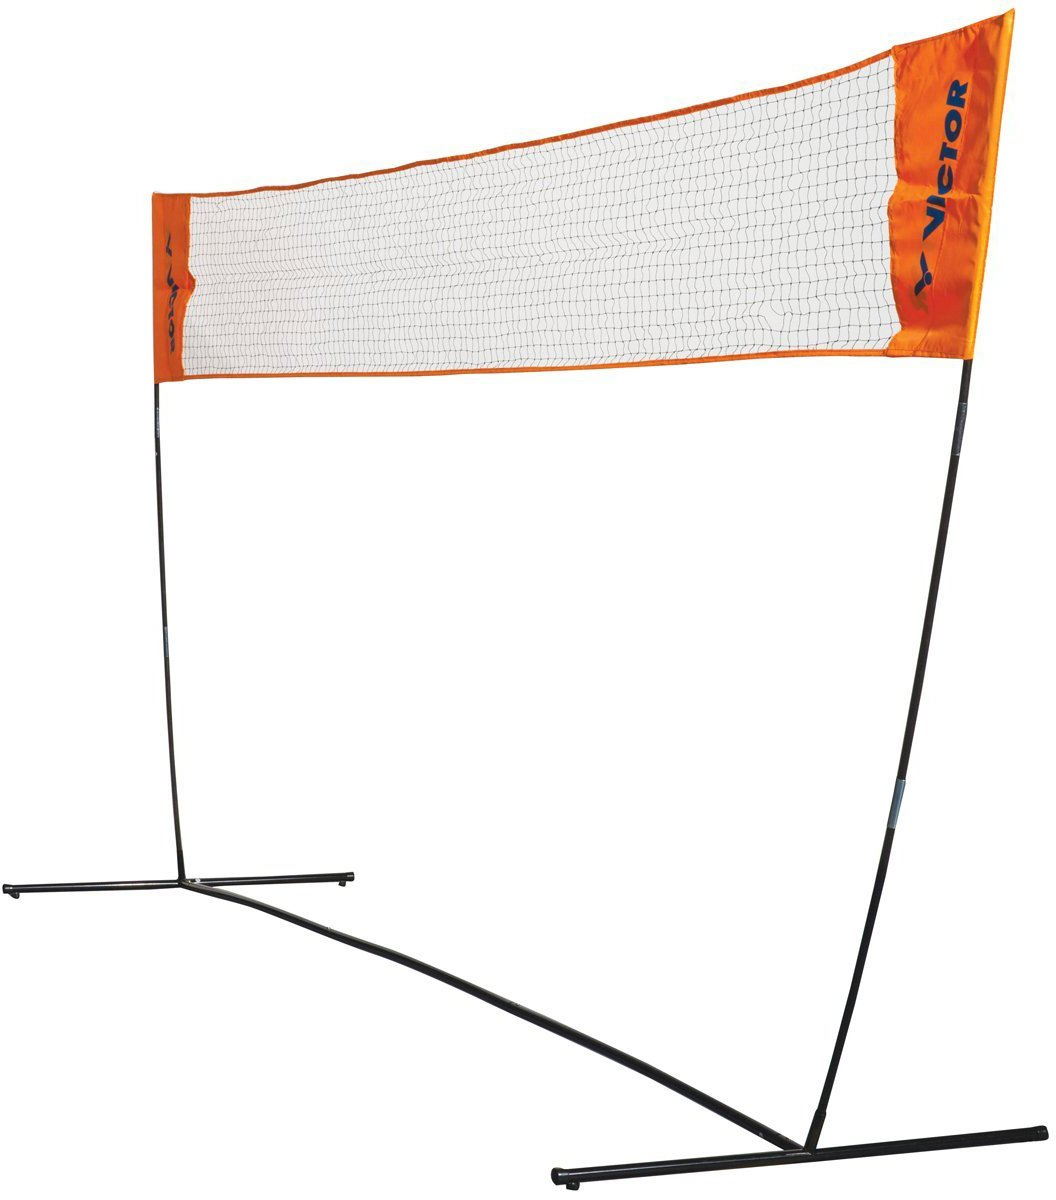 Victor Easy Net - Badminton & Tennis - 3.5m Wide with Adjustable Height - Blue 859/2/0